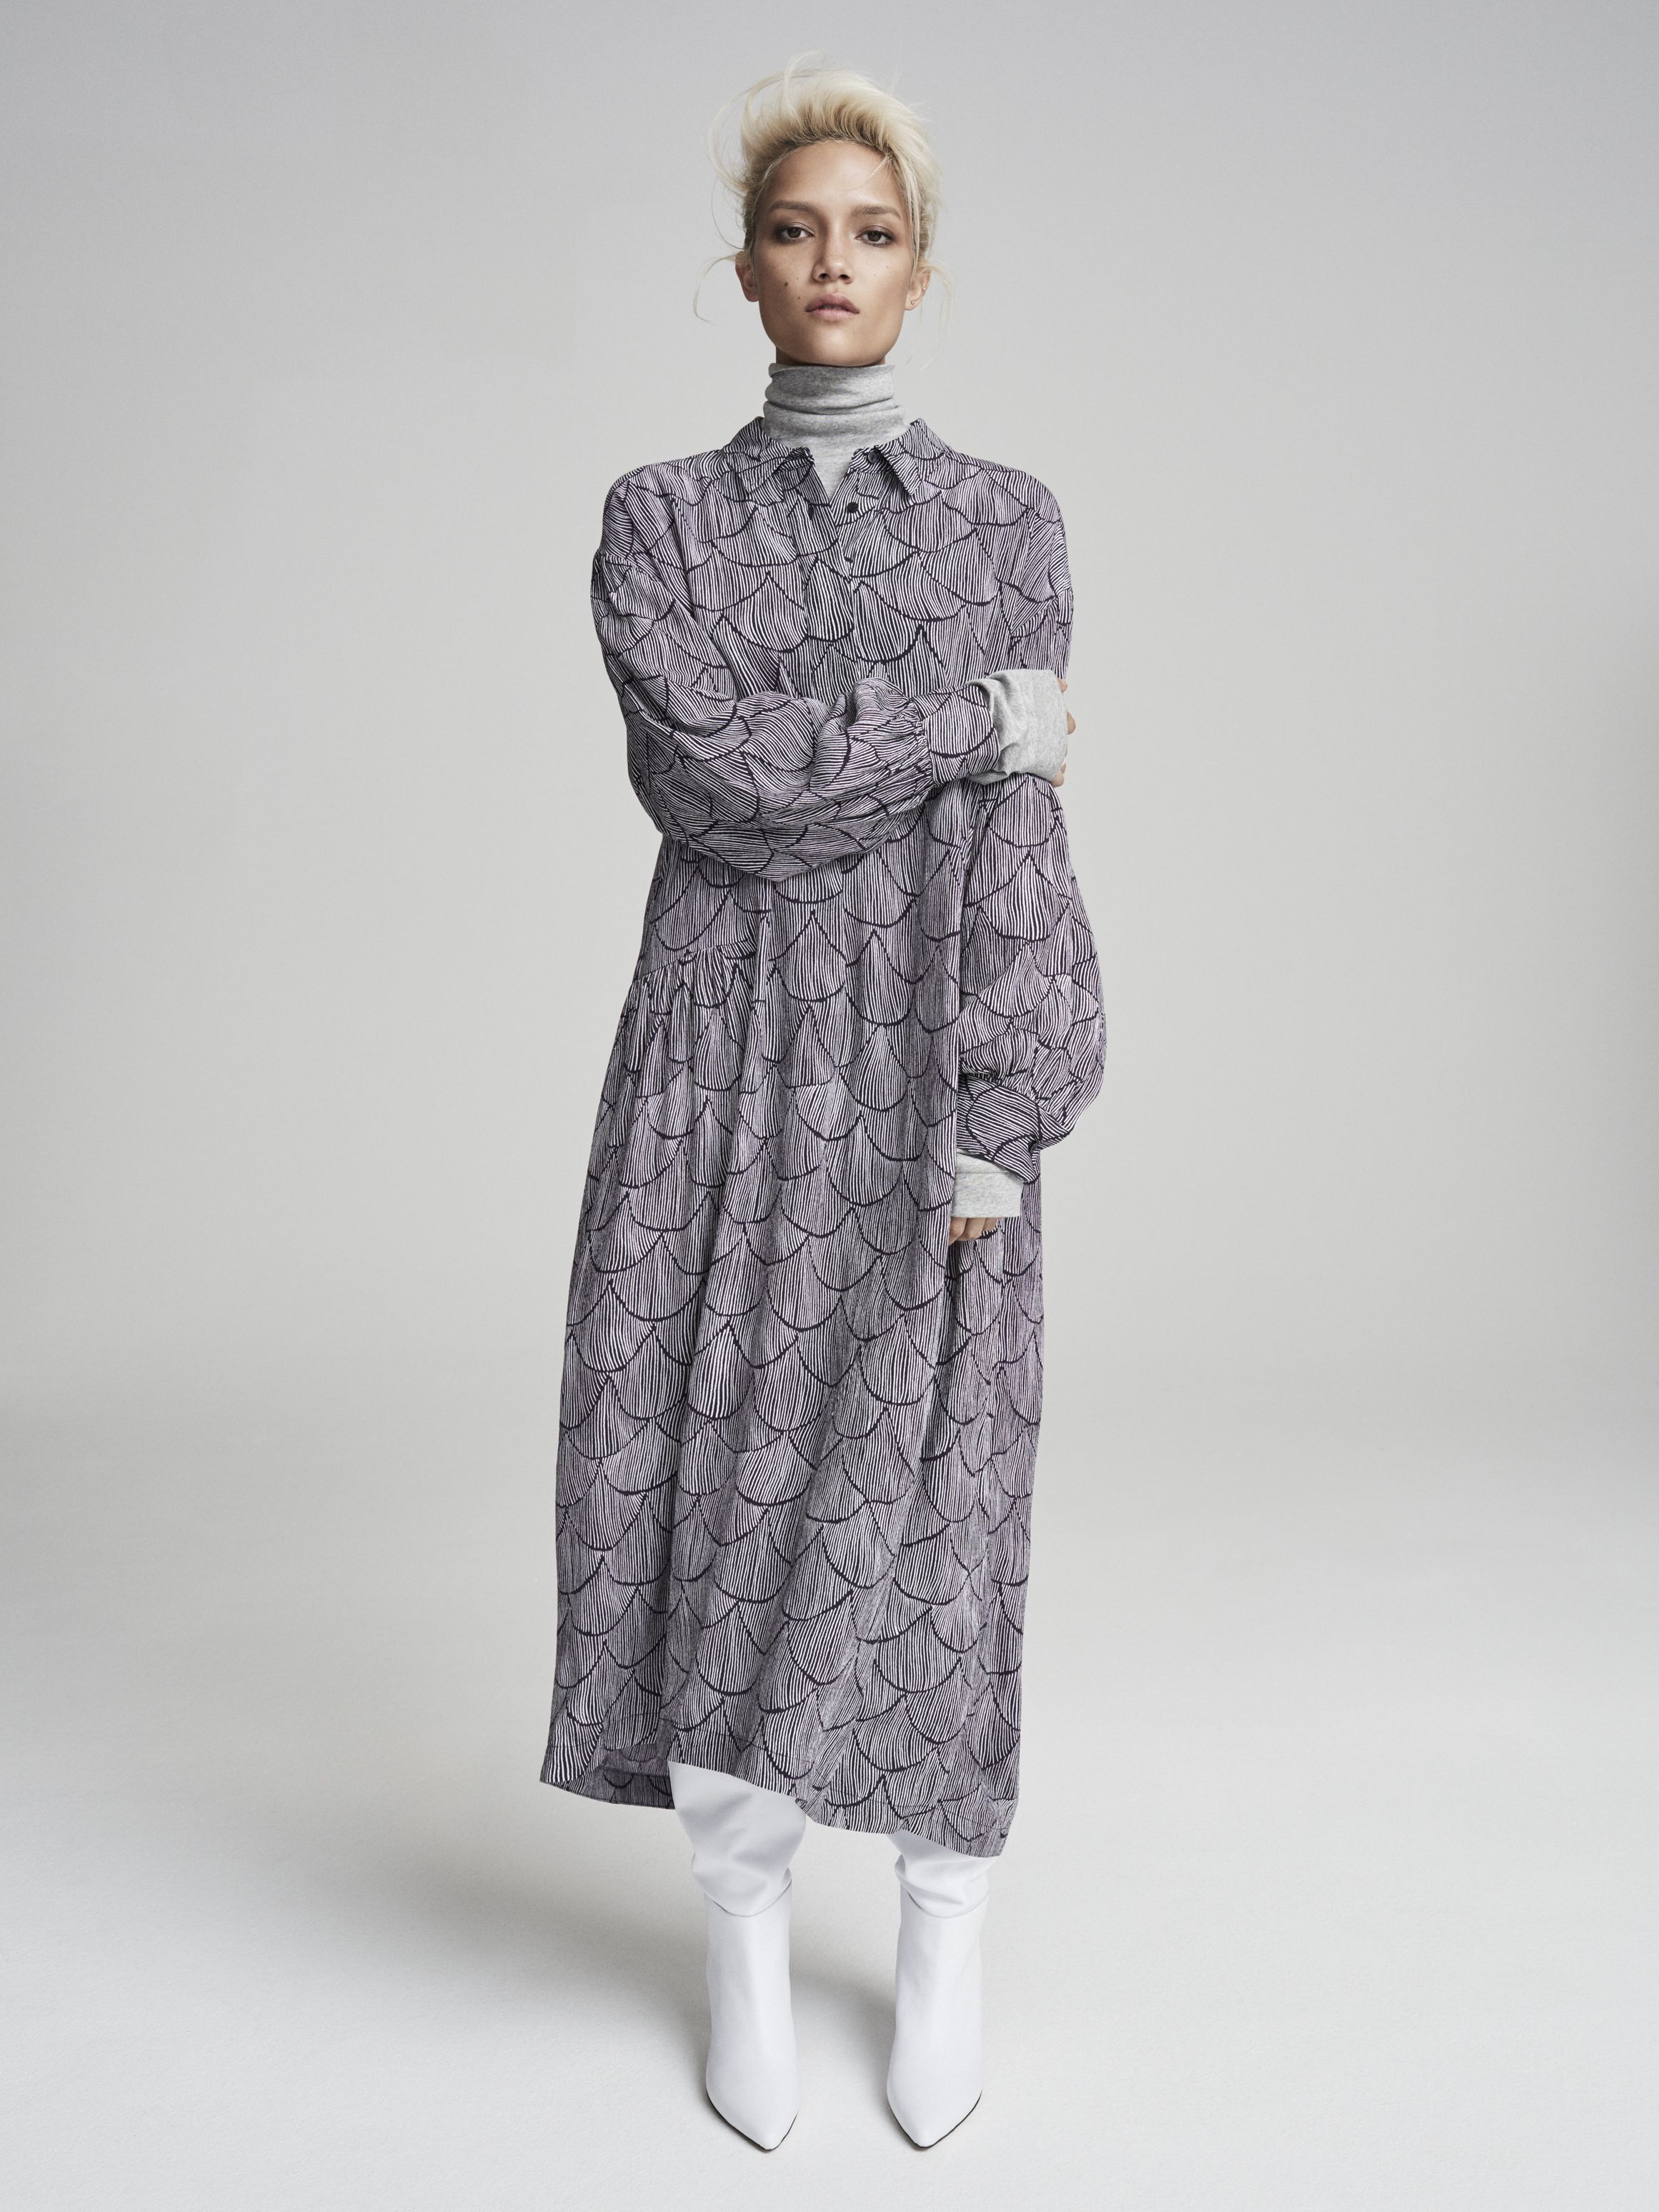 Autumn 18 From Kin By John Lewis Is Timeless And Simplistic The Collection Which Is Inspired By Japanes Fashion Summer Fashion Dresses Winter Fashion Outfits